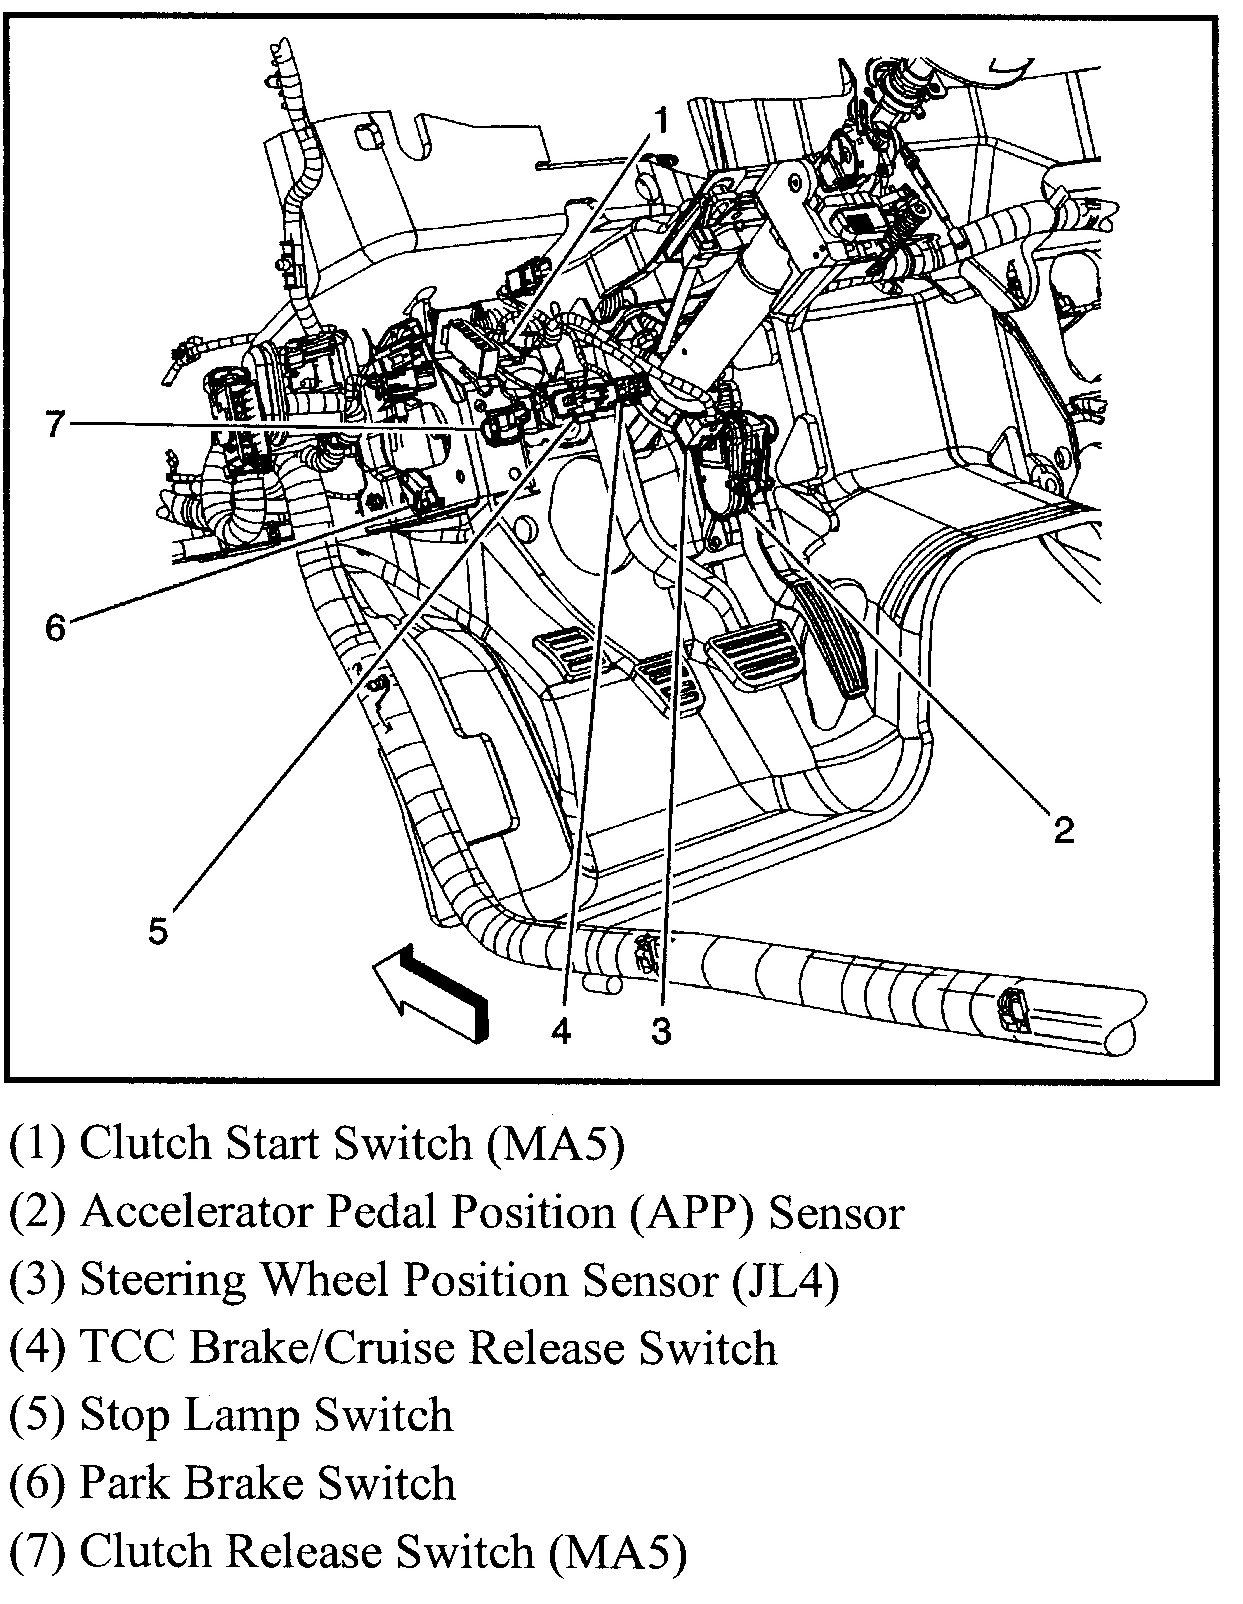 Where is throttle position sensor on the H3 located